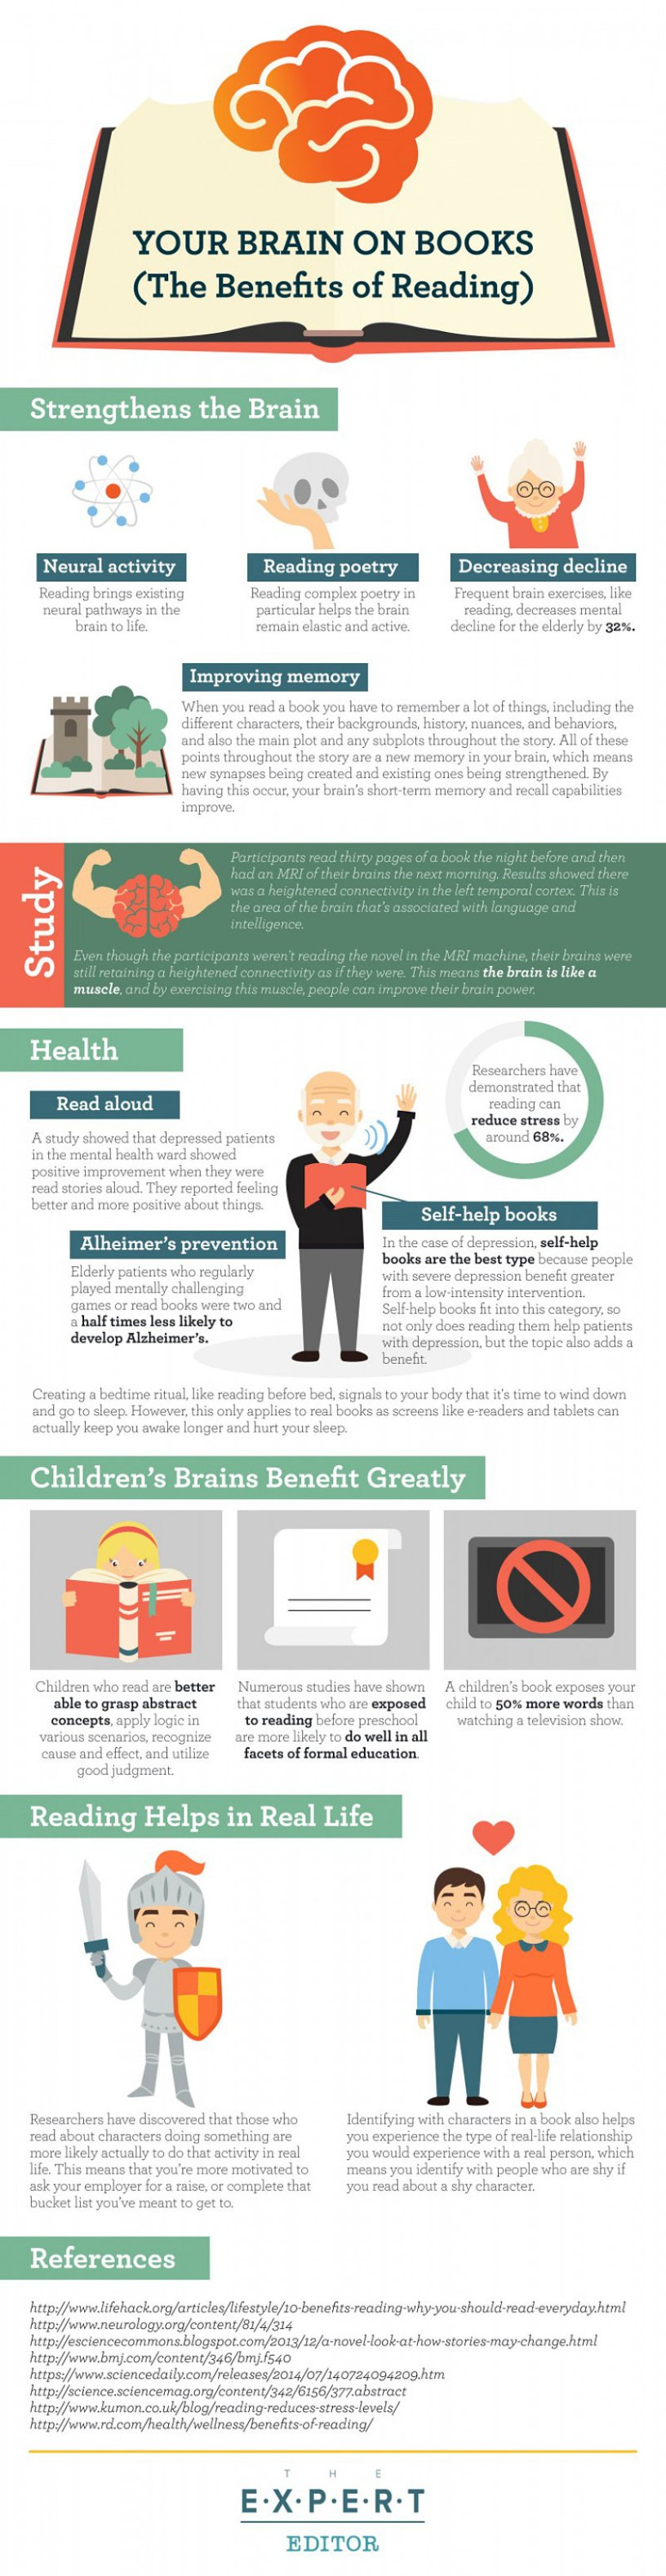 your-brain-on-books-full-infographic